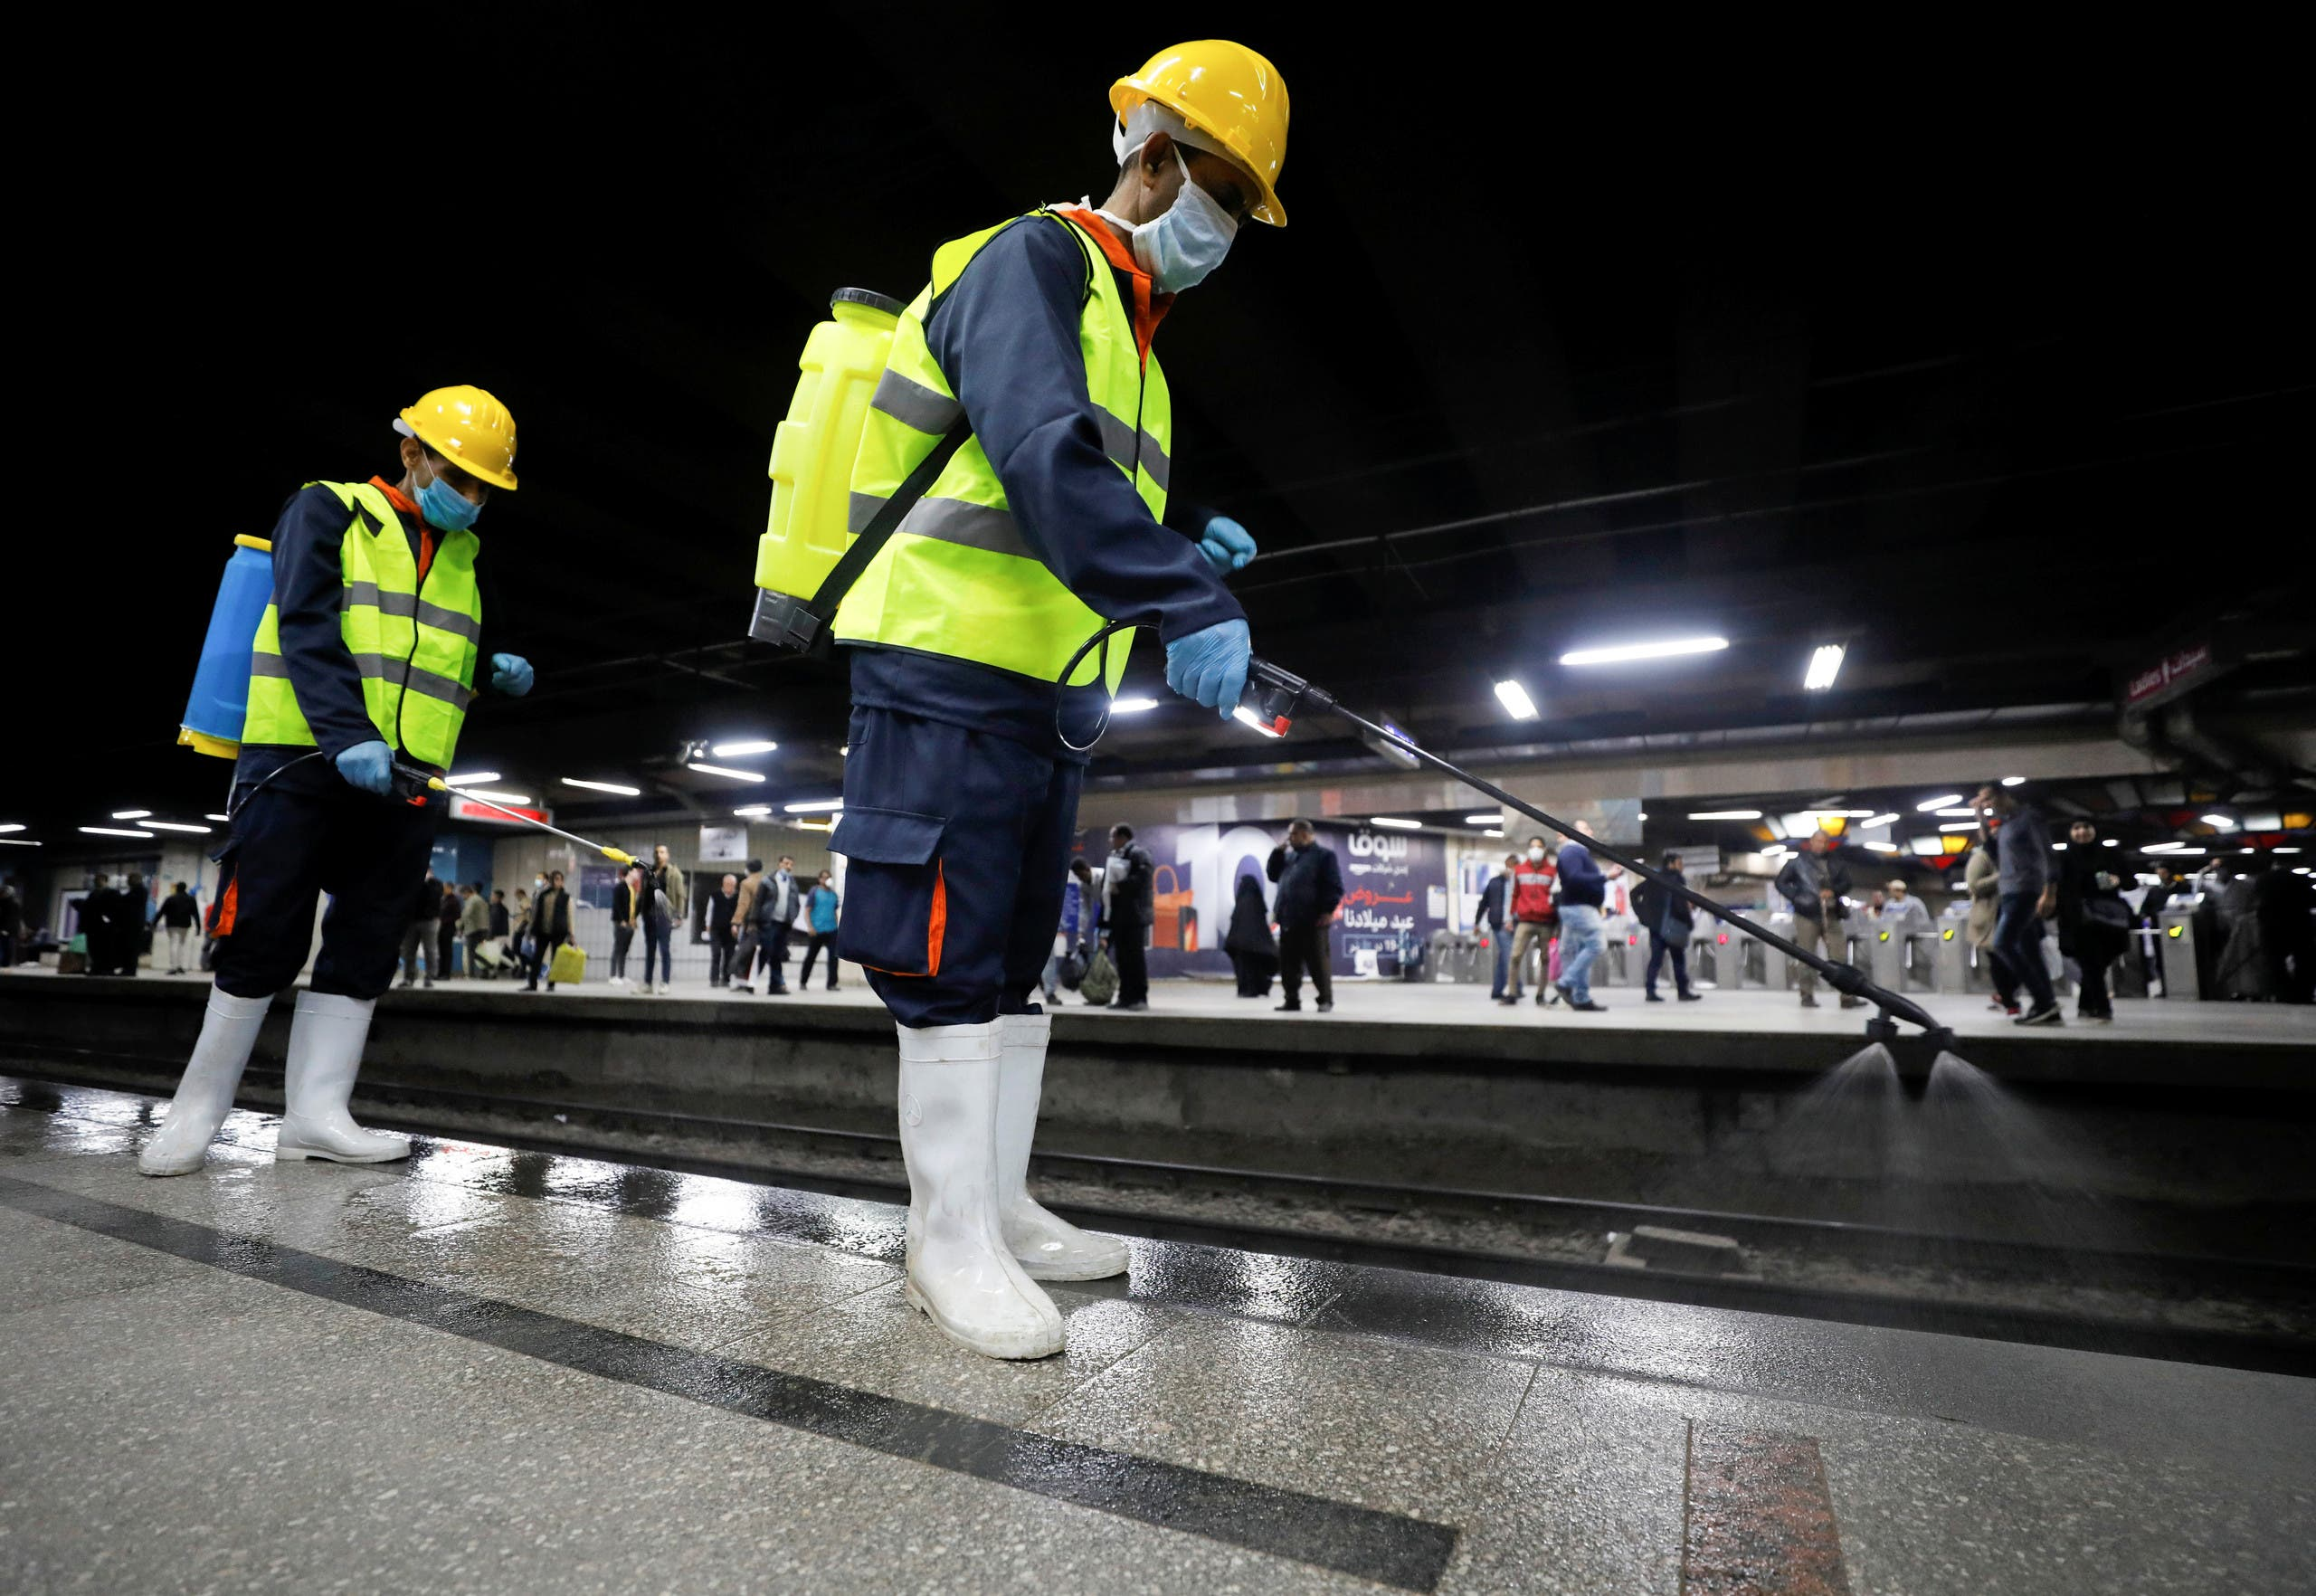 A member of medical team sprays disinfectant as a precautionary move amid concerns over the coronavirus disease (COVID-19) outbreak at the underground Al Shohadaa Martyrs metro station in Cairo, Egypt on March 22, 2020. (Reuters)